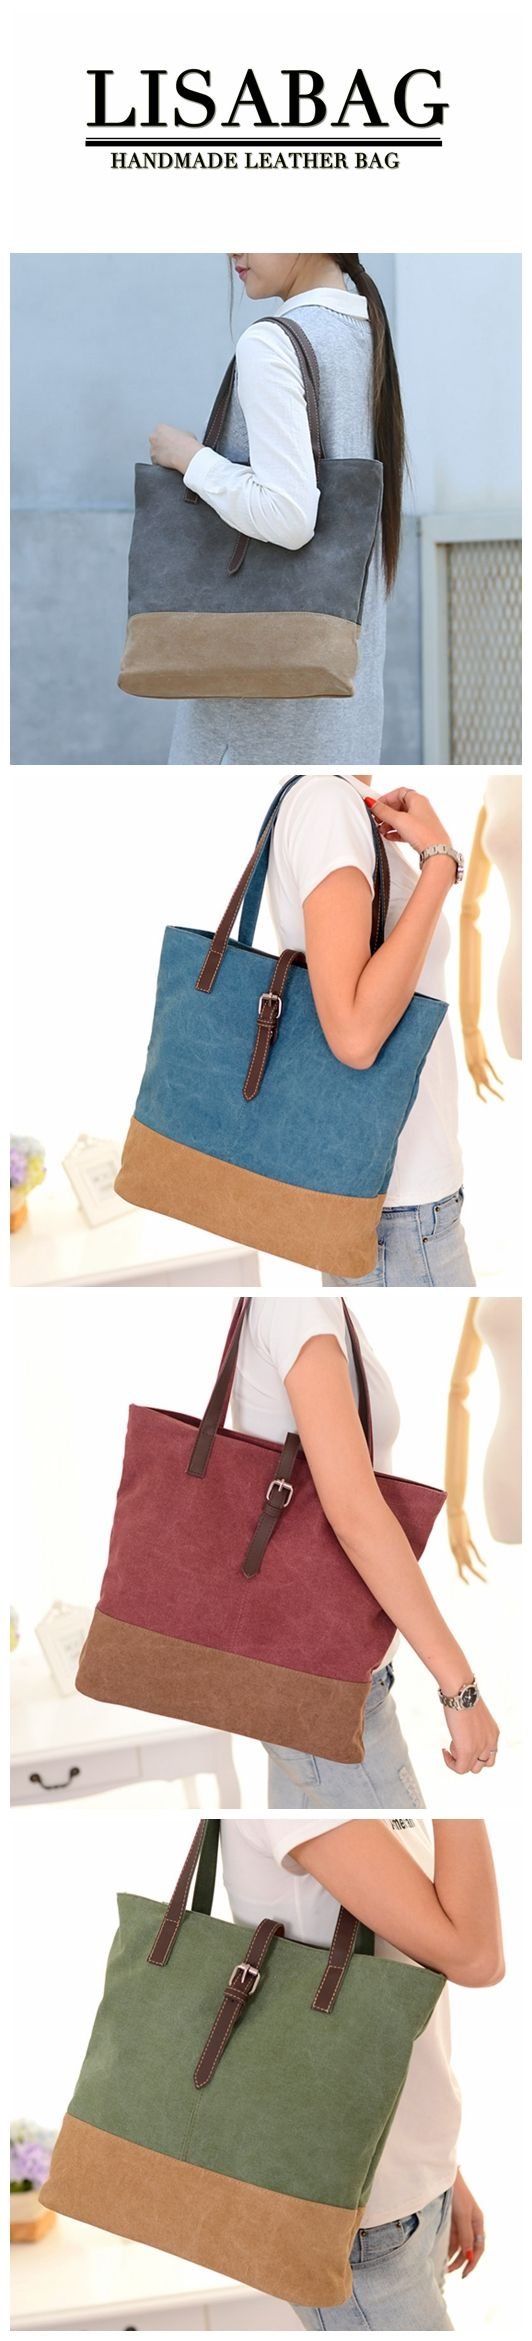 Women's Fashion Canvas Bag Shoulder Bag Casual Canvas Totes Diaper Bag in Green MD01